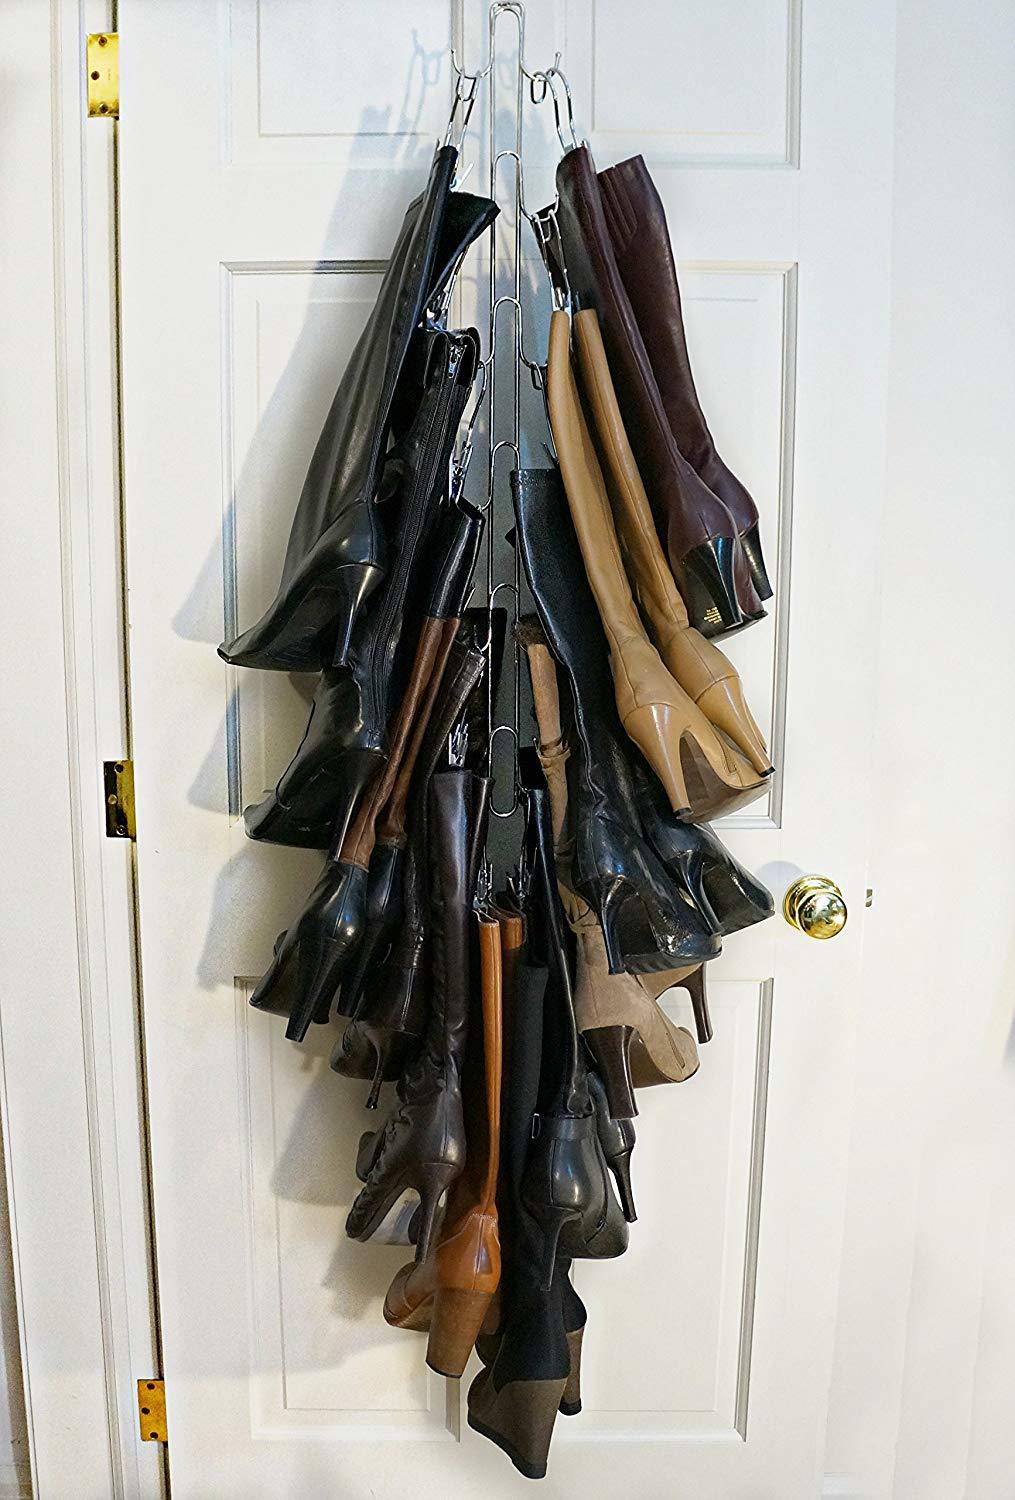 shoe storage hacks features complete vertical boot storage system to keep boots organized and accessible